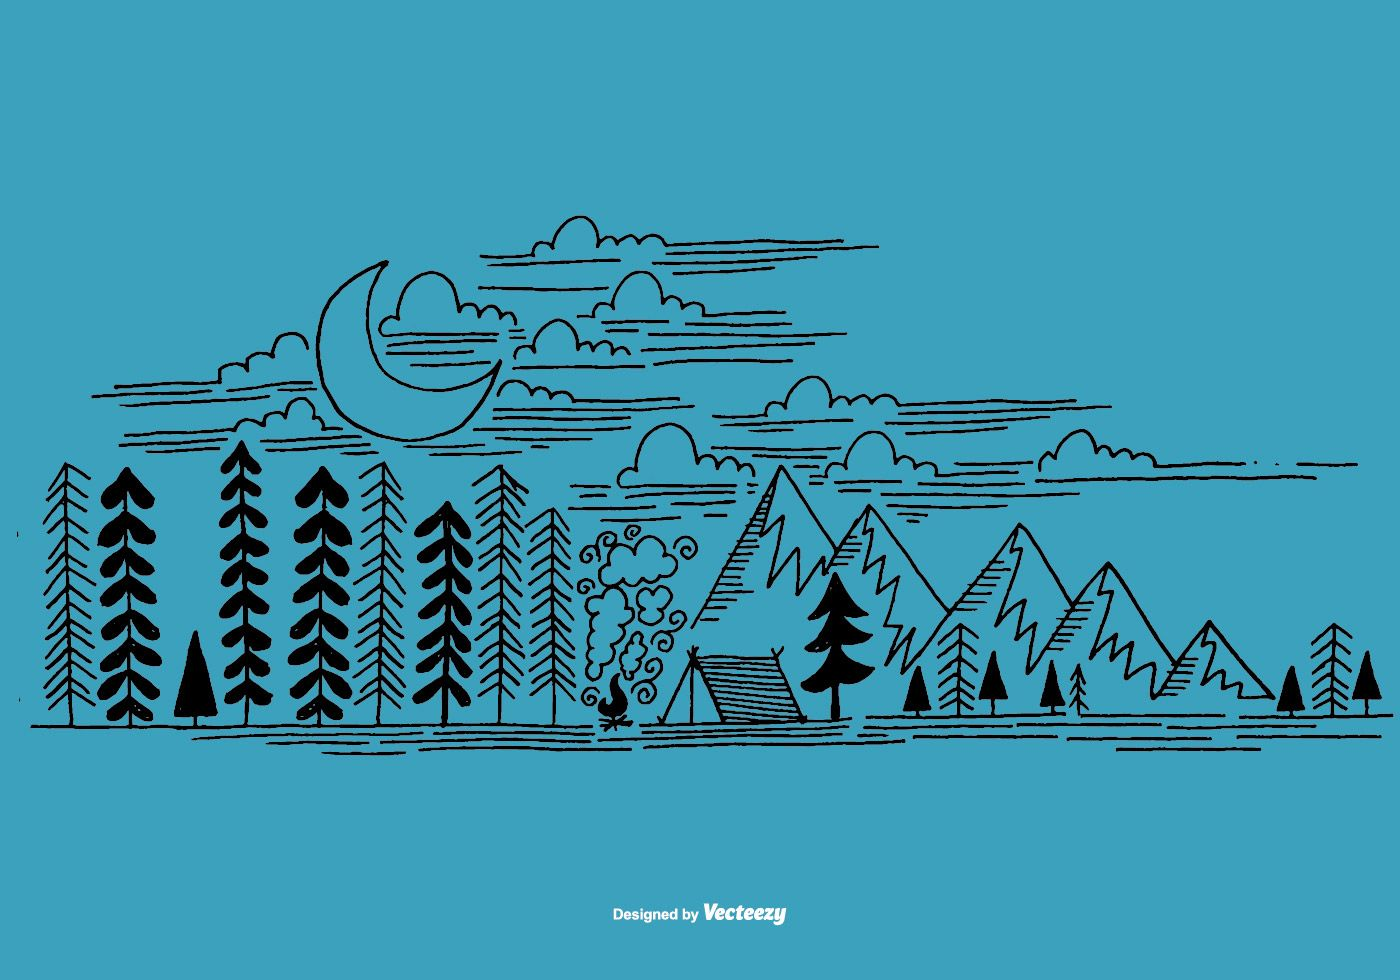 A hand drawn, line art camping scene. How to draw hands